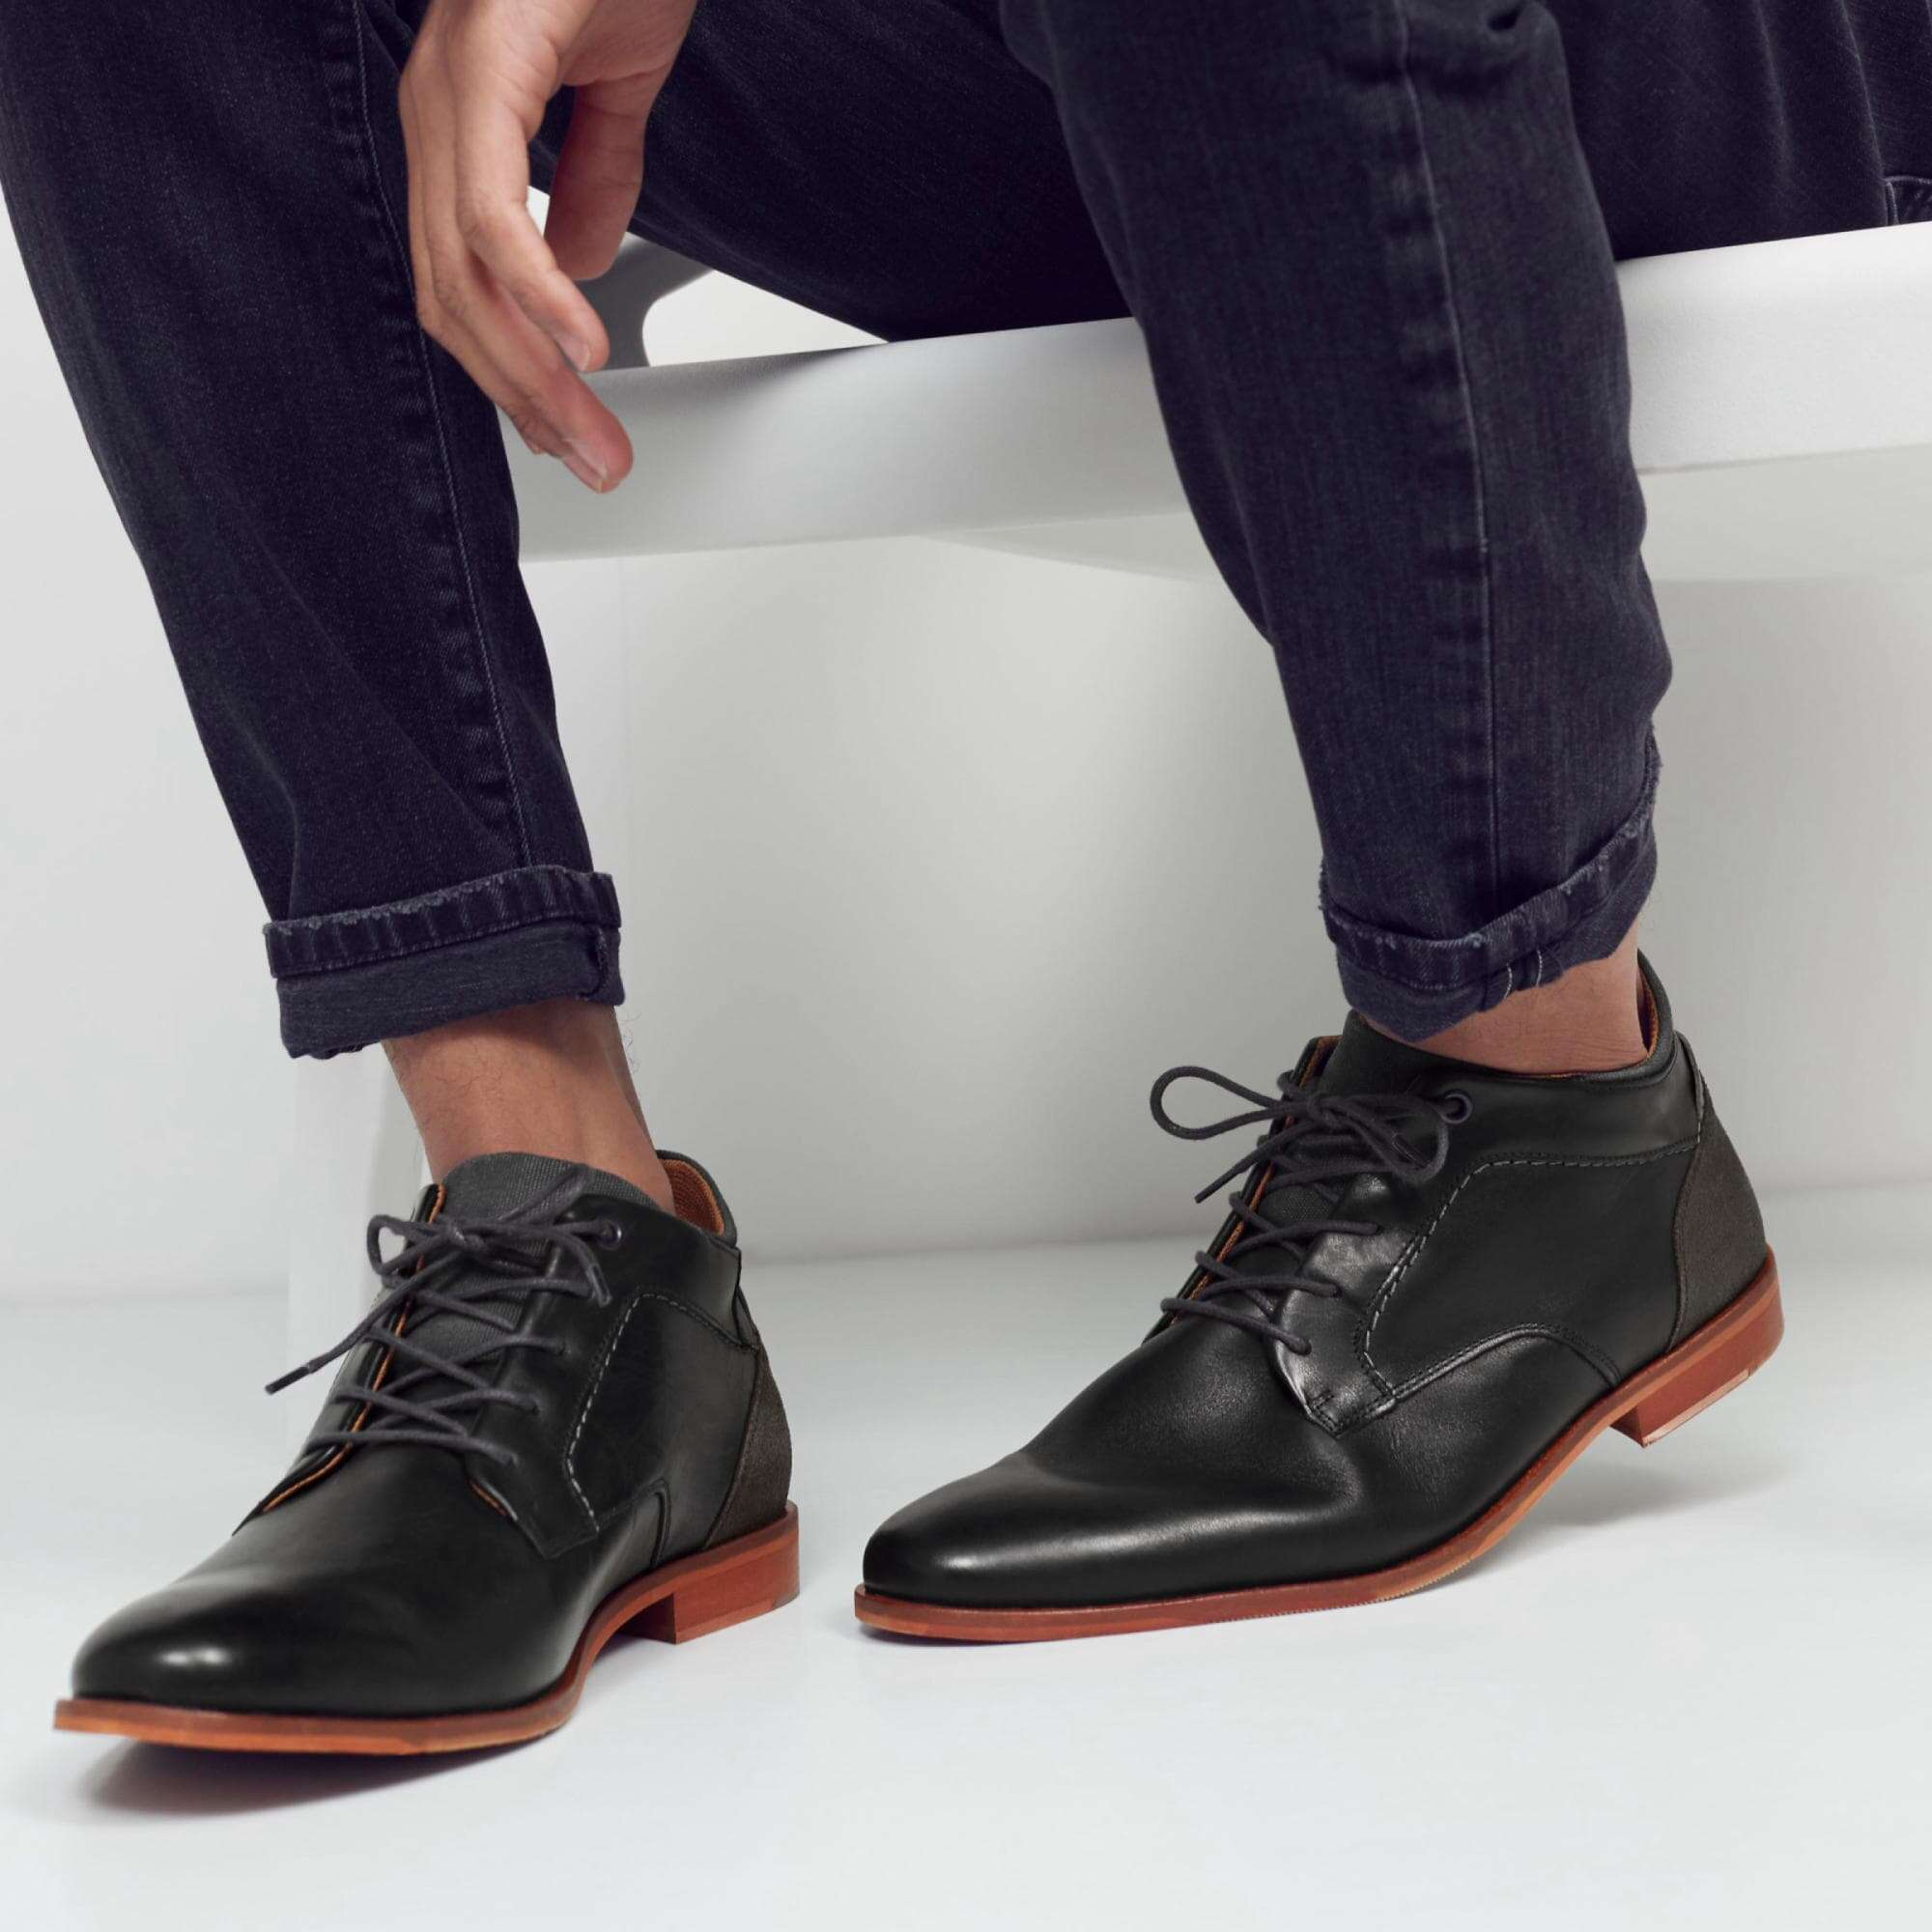 men footwear from £18 - Dress to impress. Kick it up a notch with flexible soles: lightweight & optimised to move with your feet. The shoes you love, without ever compromising your style.